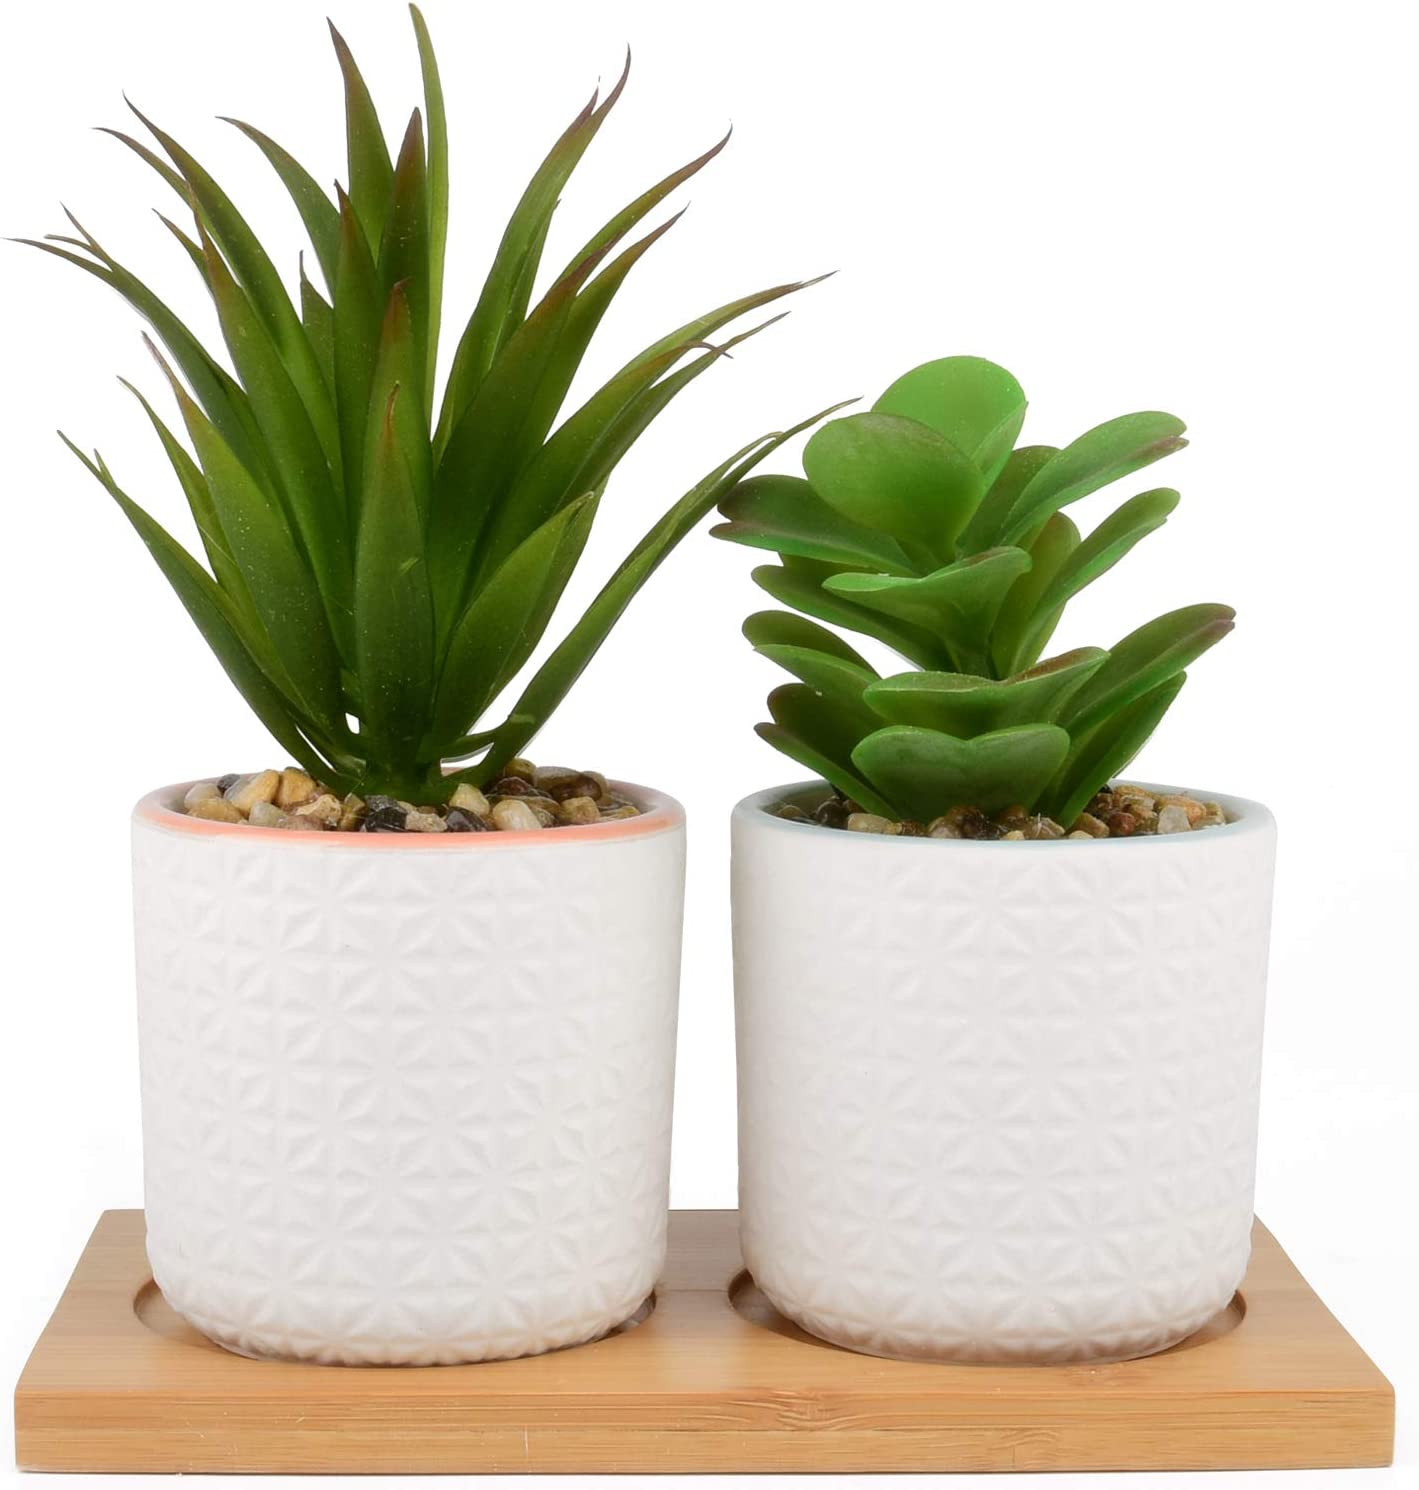 """IMPRESA Set of 2 Artificial Succulent Plants, Fake Plants in White Ceramic Pots with Bamboo Tray, 6.5"""" Tall"""